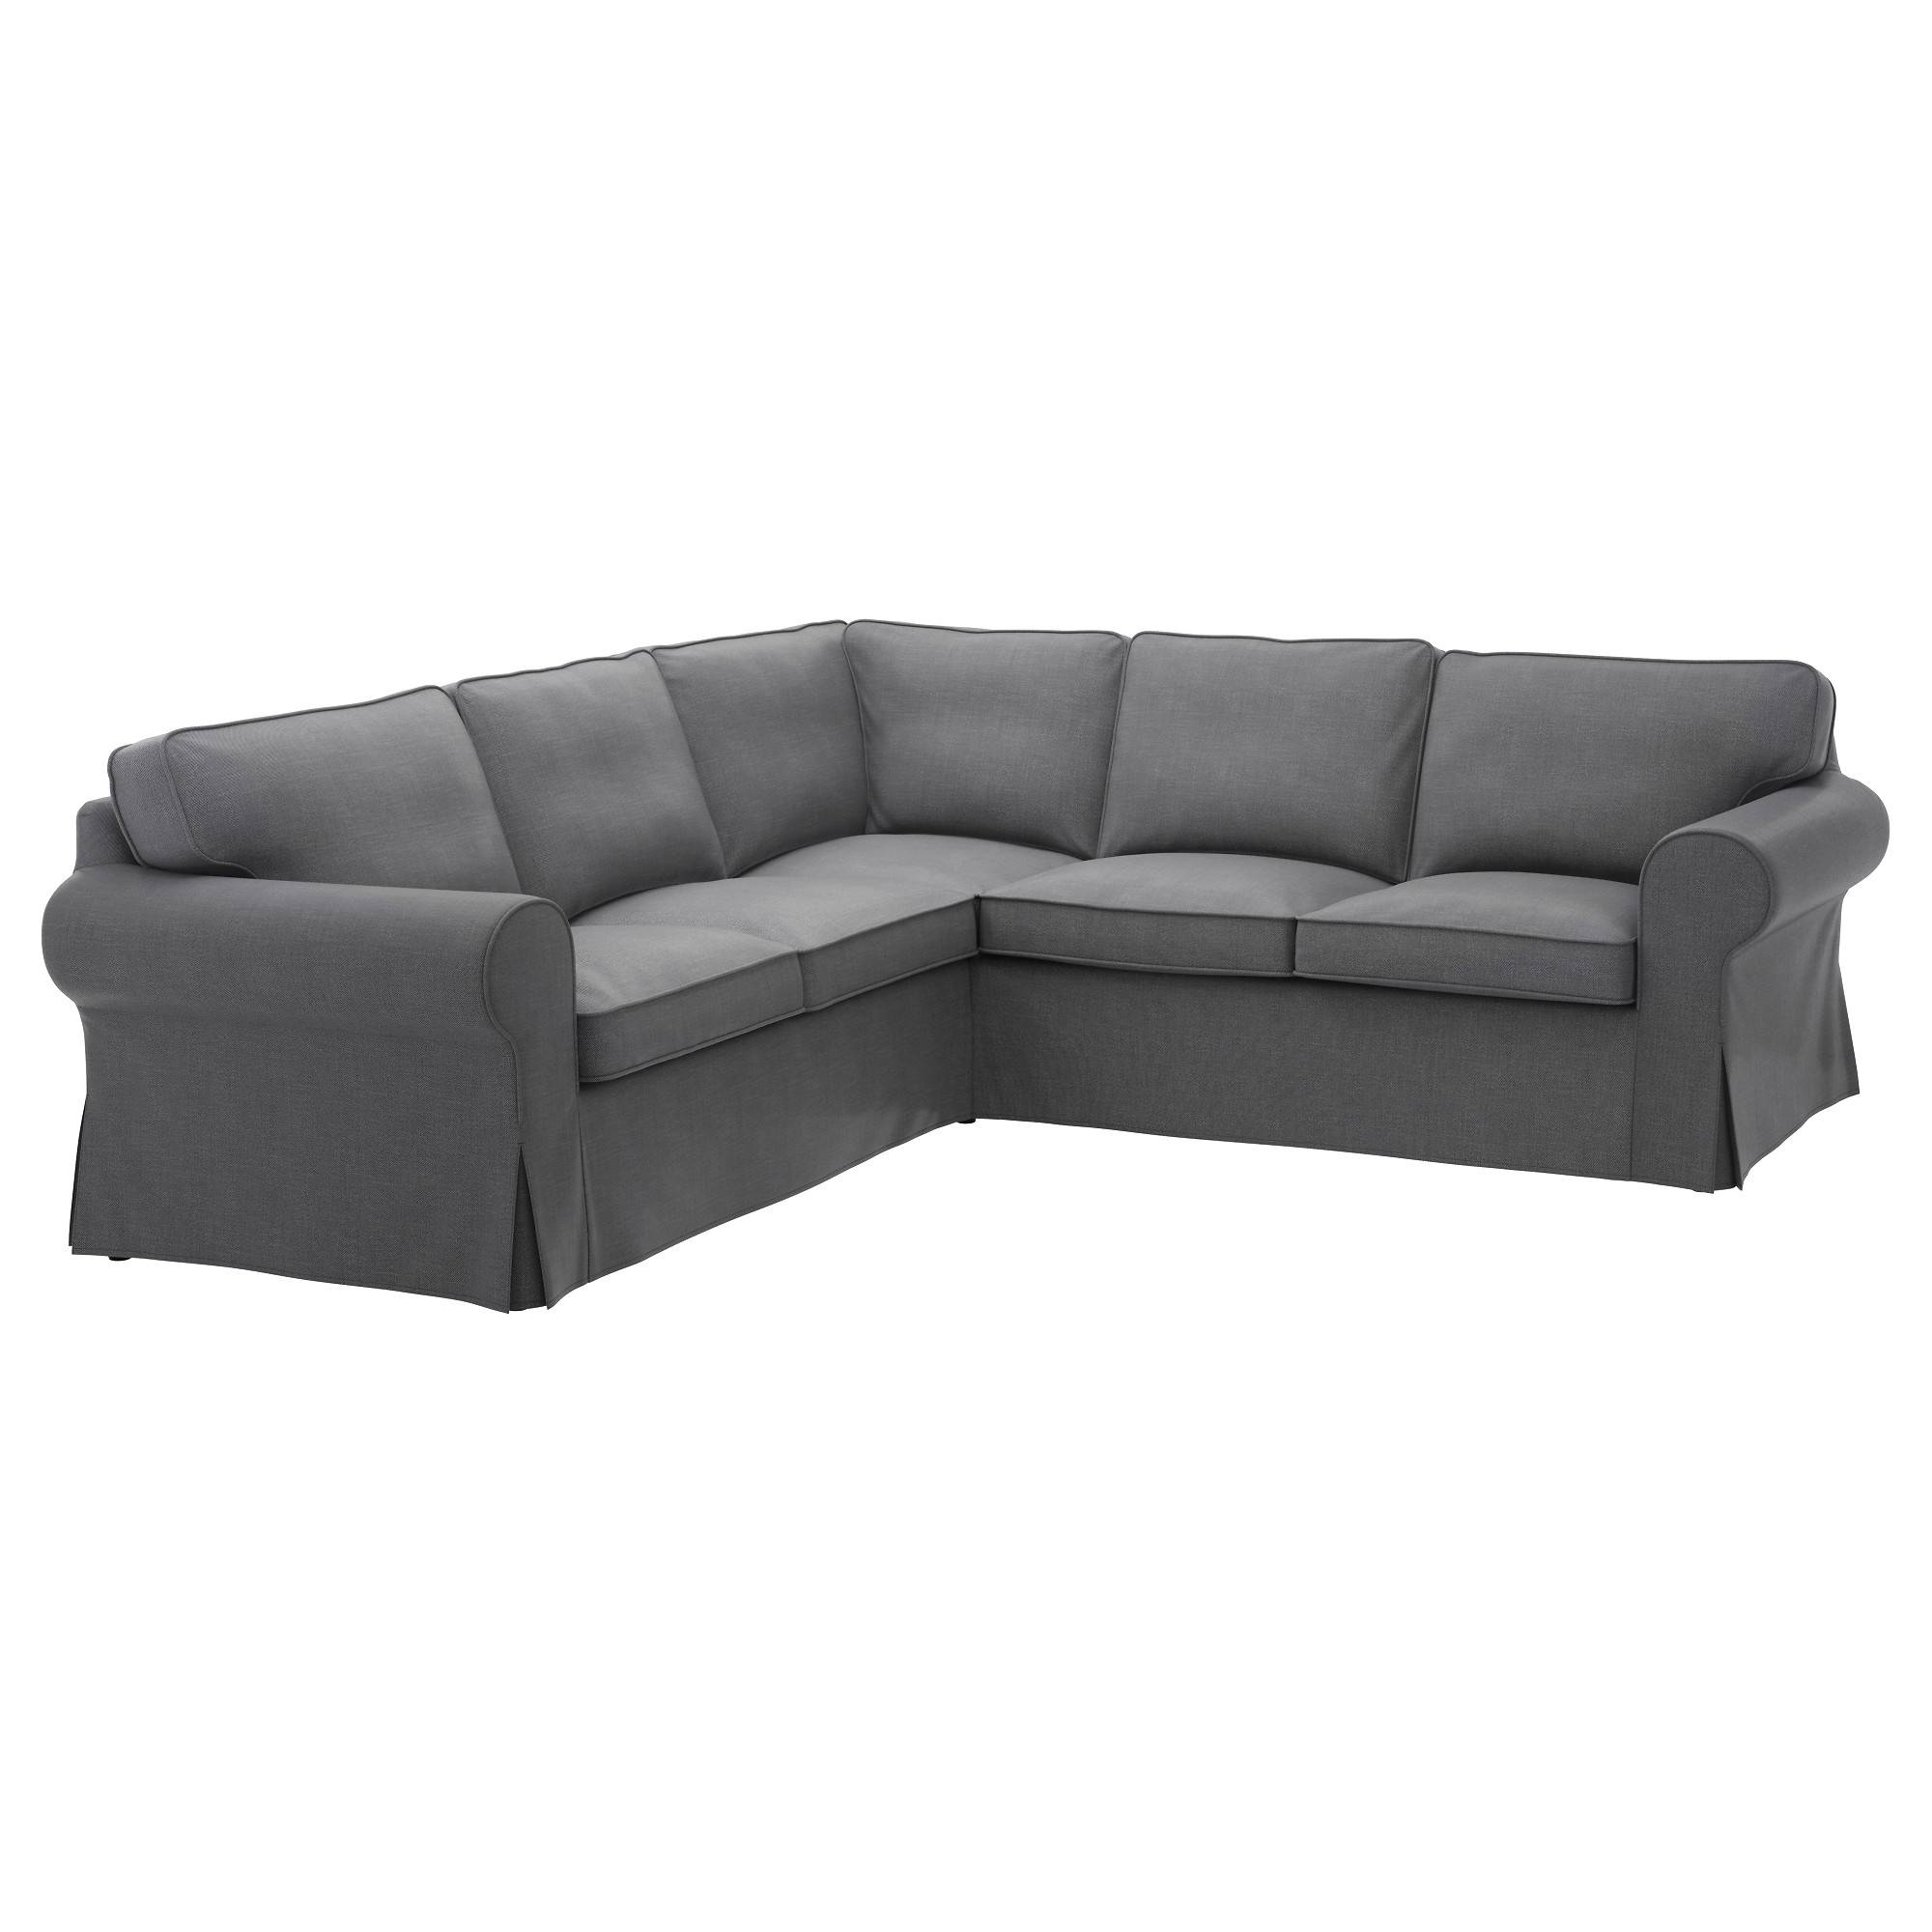 Fabric Sectional Sofas - Ikea within Angled Sofa Sectional (Image 15 of 30)